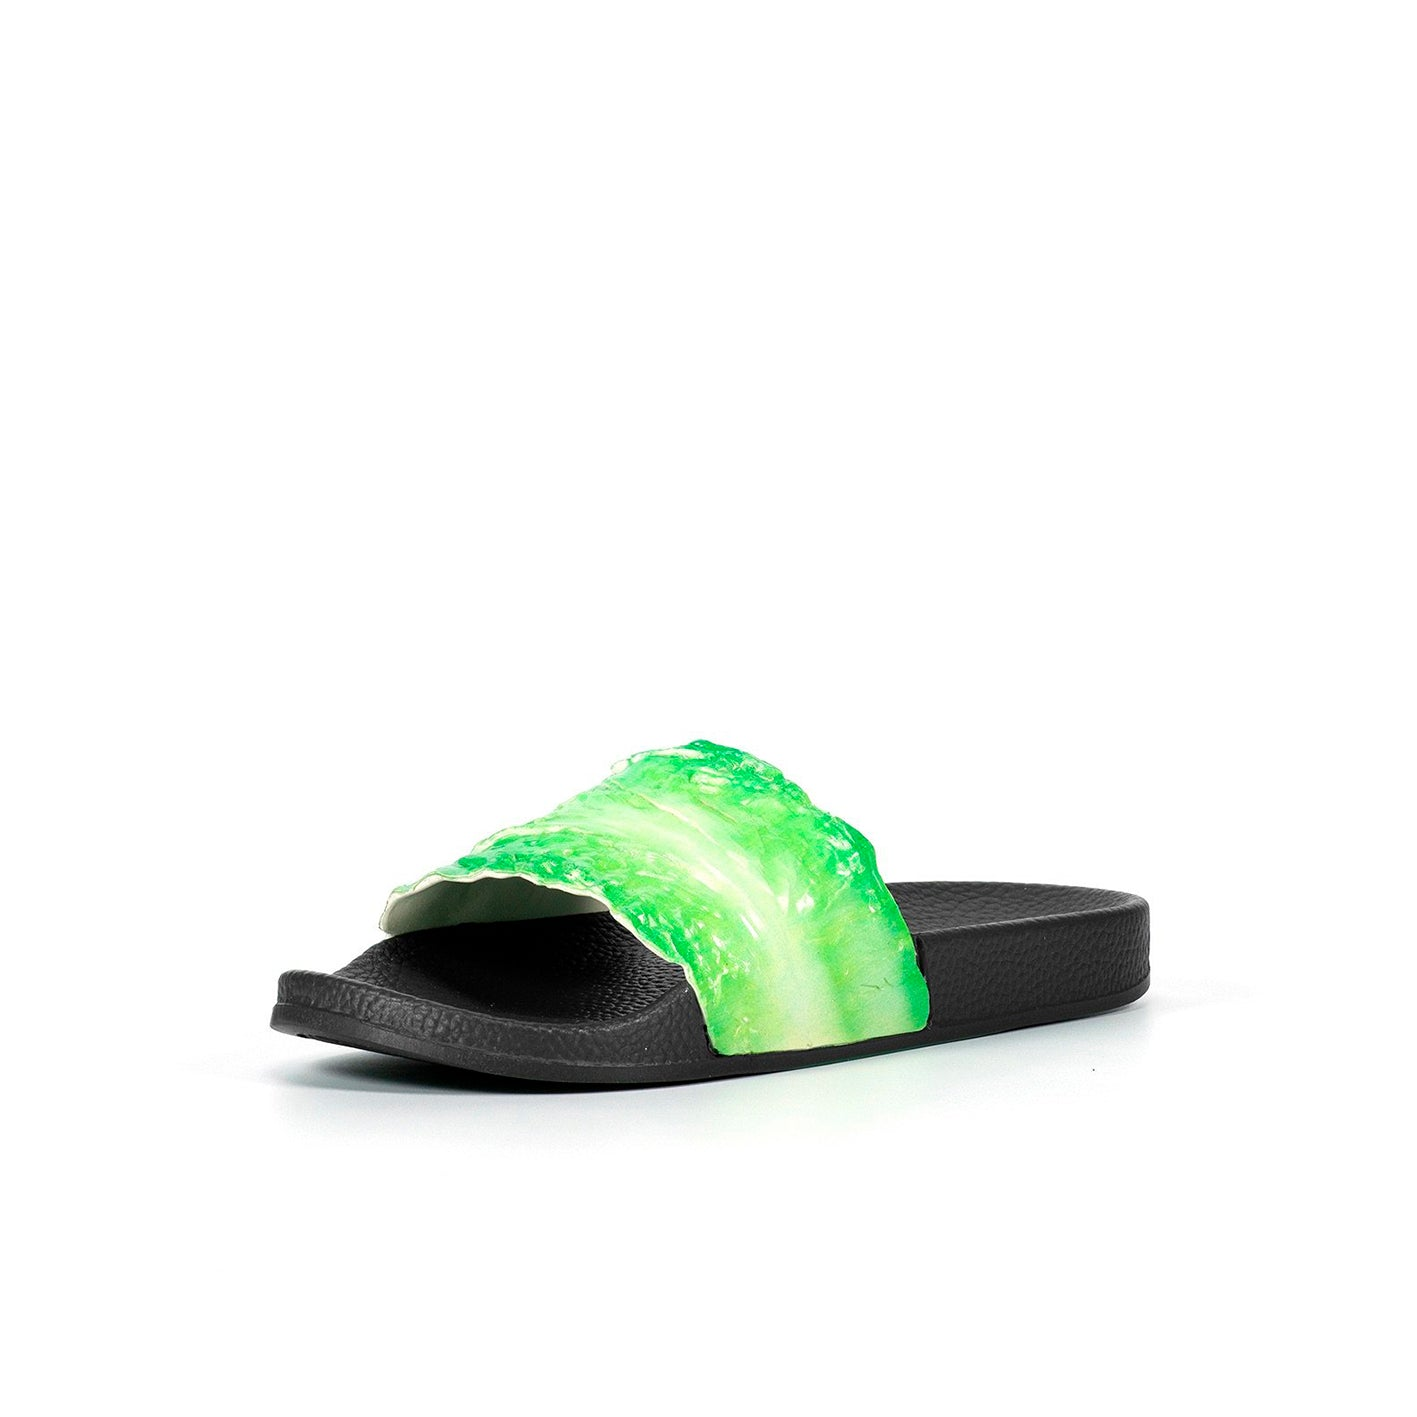 LETTUCE SLIDES - 2ND EDITION